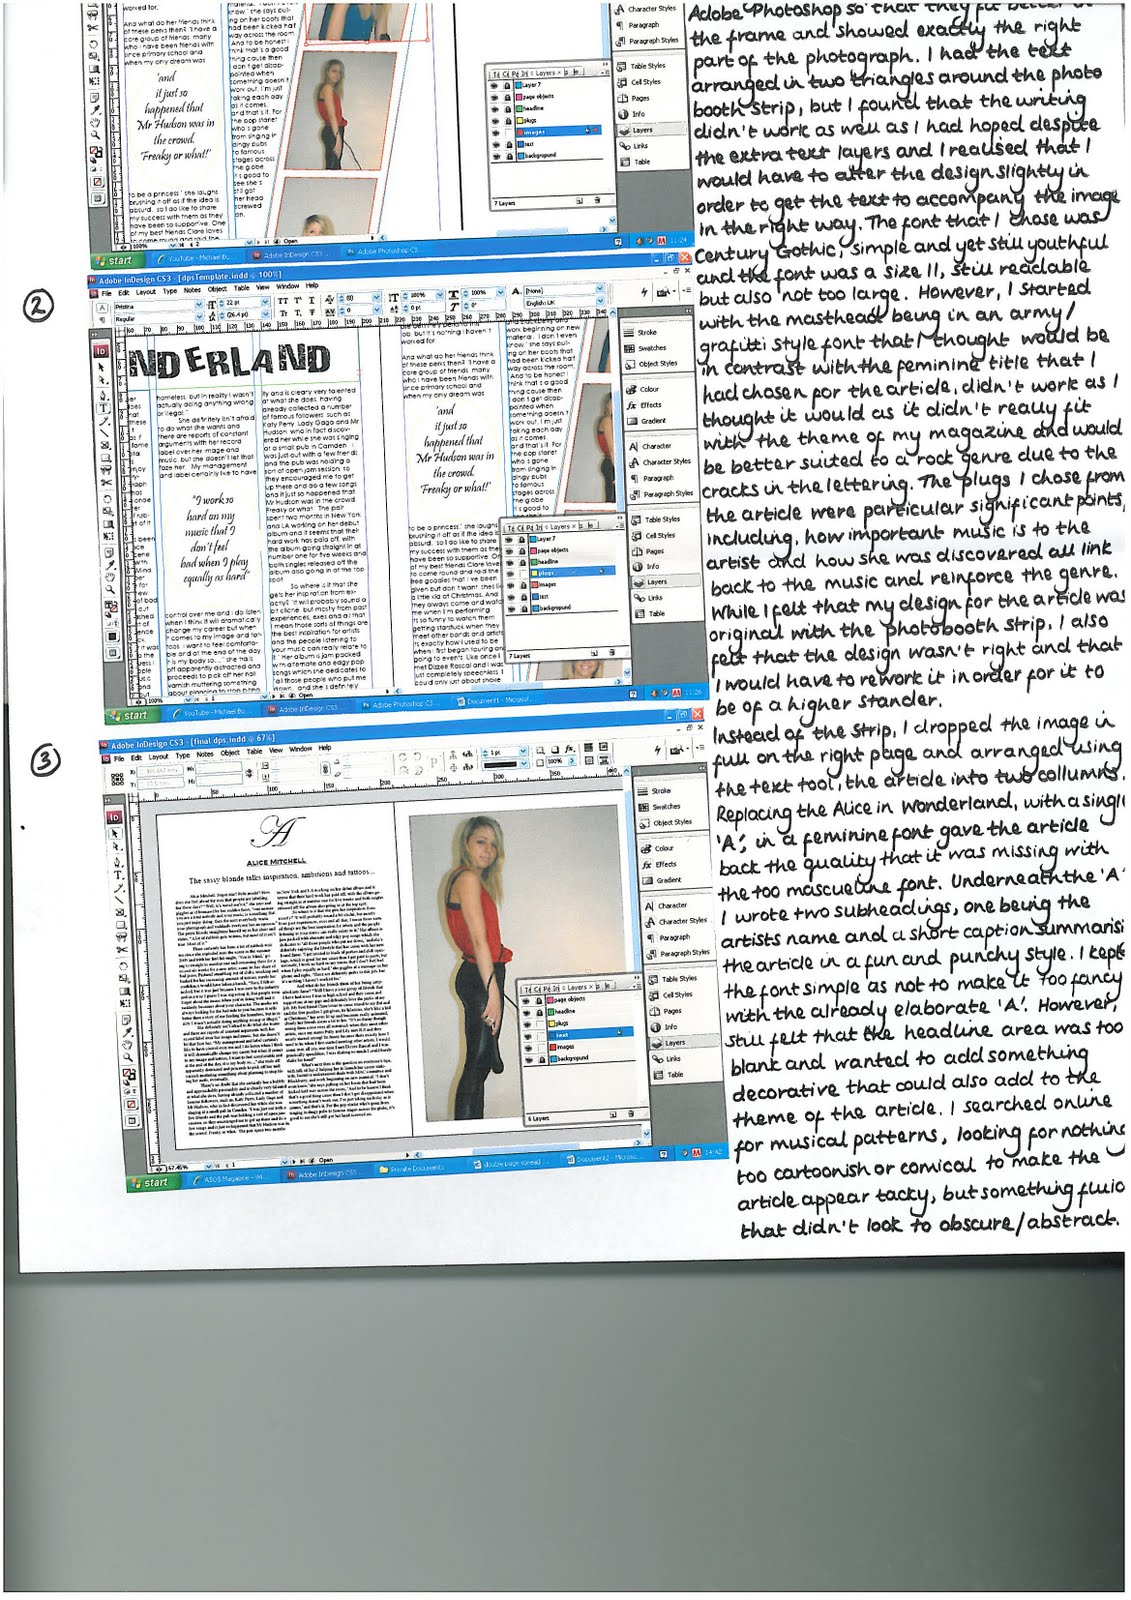 Clare Waddicor 0901 G321FOUNDATIONQuestion And Answer Magazine Format